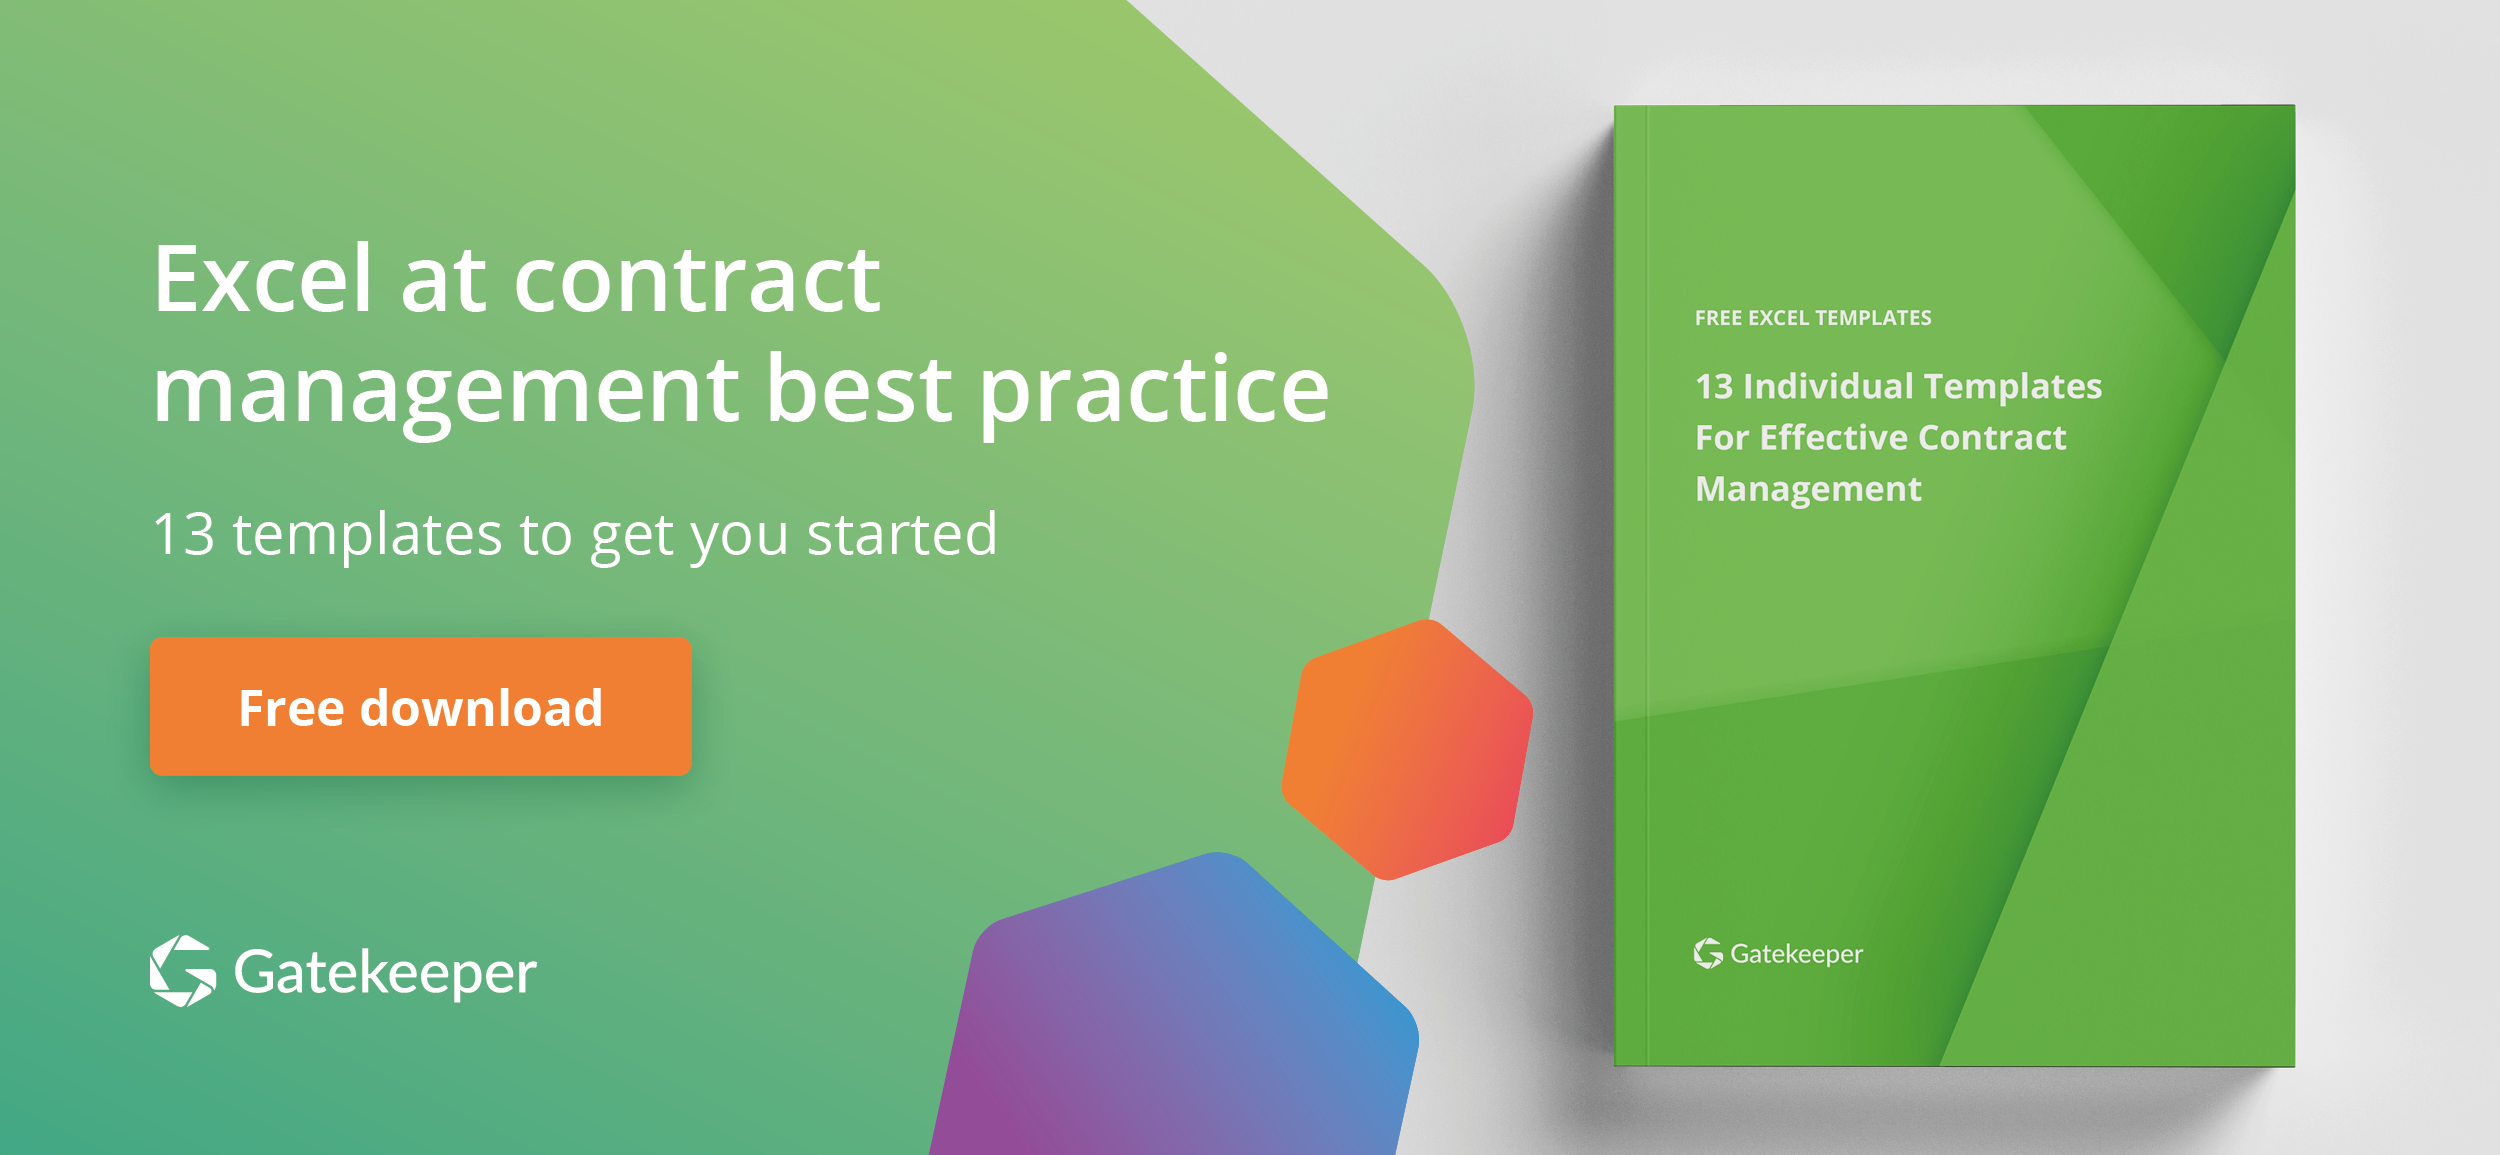 Create a high quality document online now! Managing Contracts Using Excel